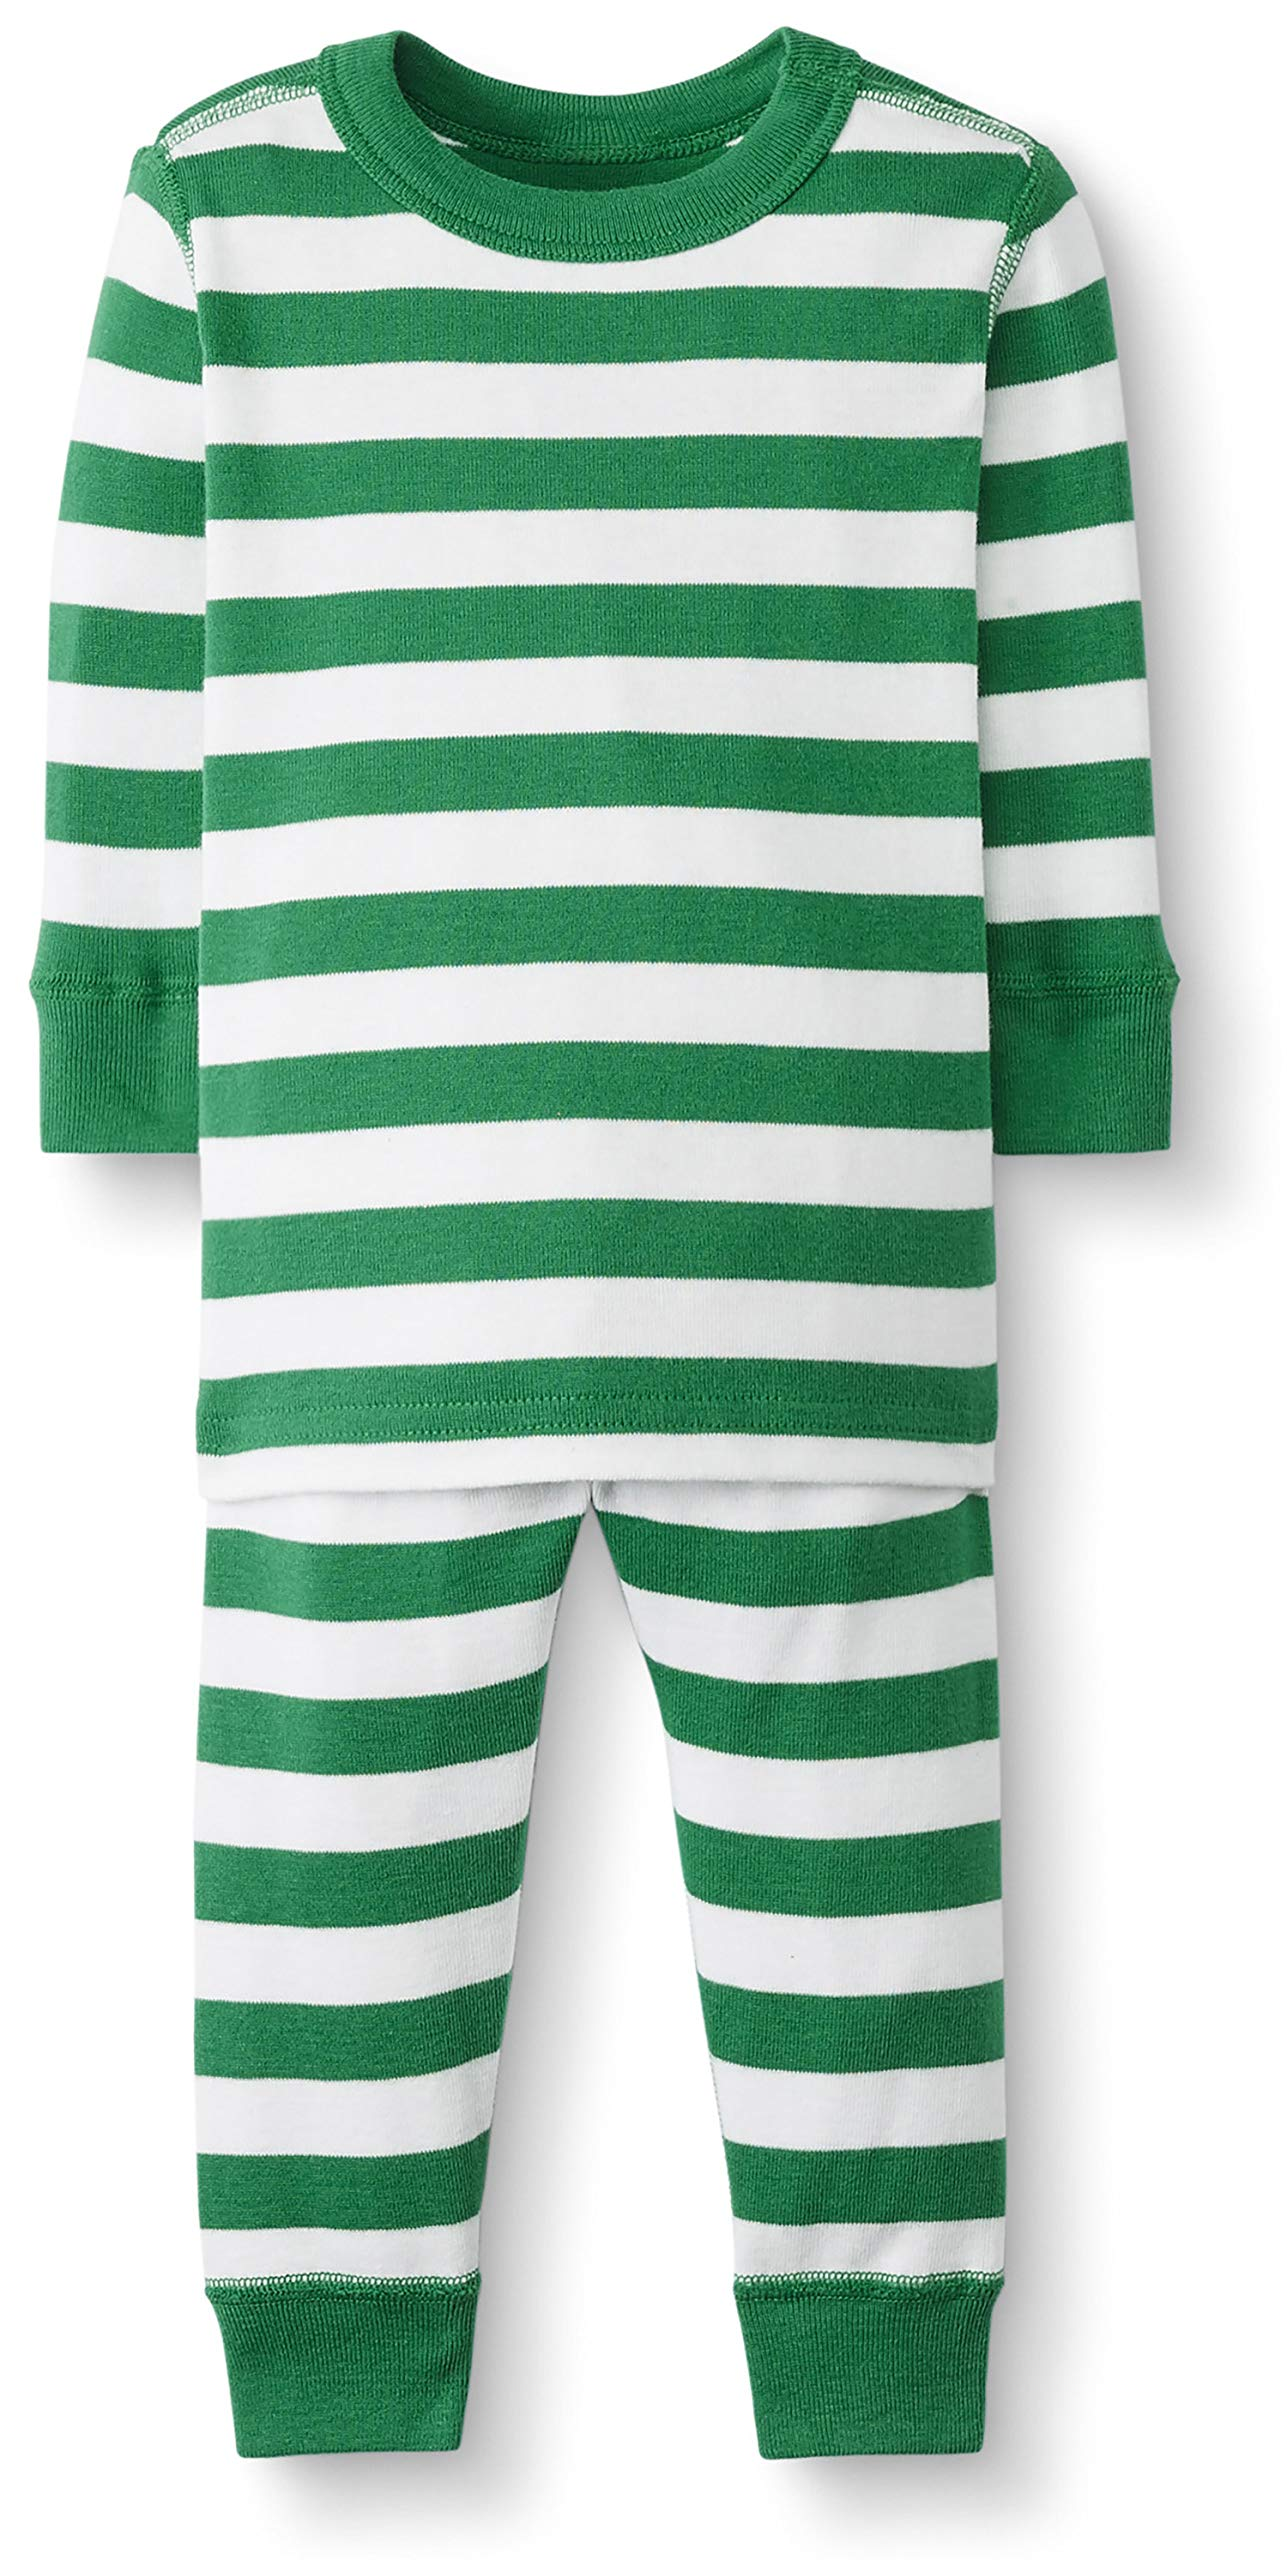 Hanna Andersson Baby/Toddler 2-Piece Organic Cotton Pajama Set Go Green/Hanna White-85 by Hanna Andersson